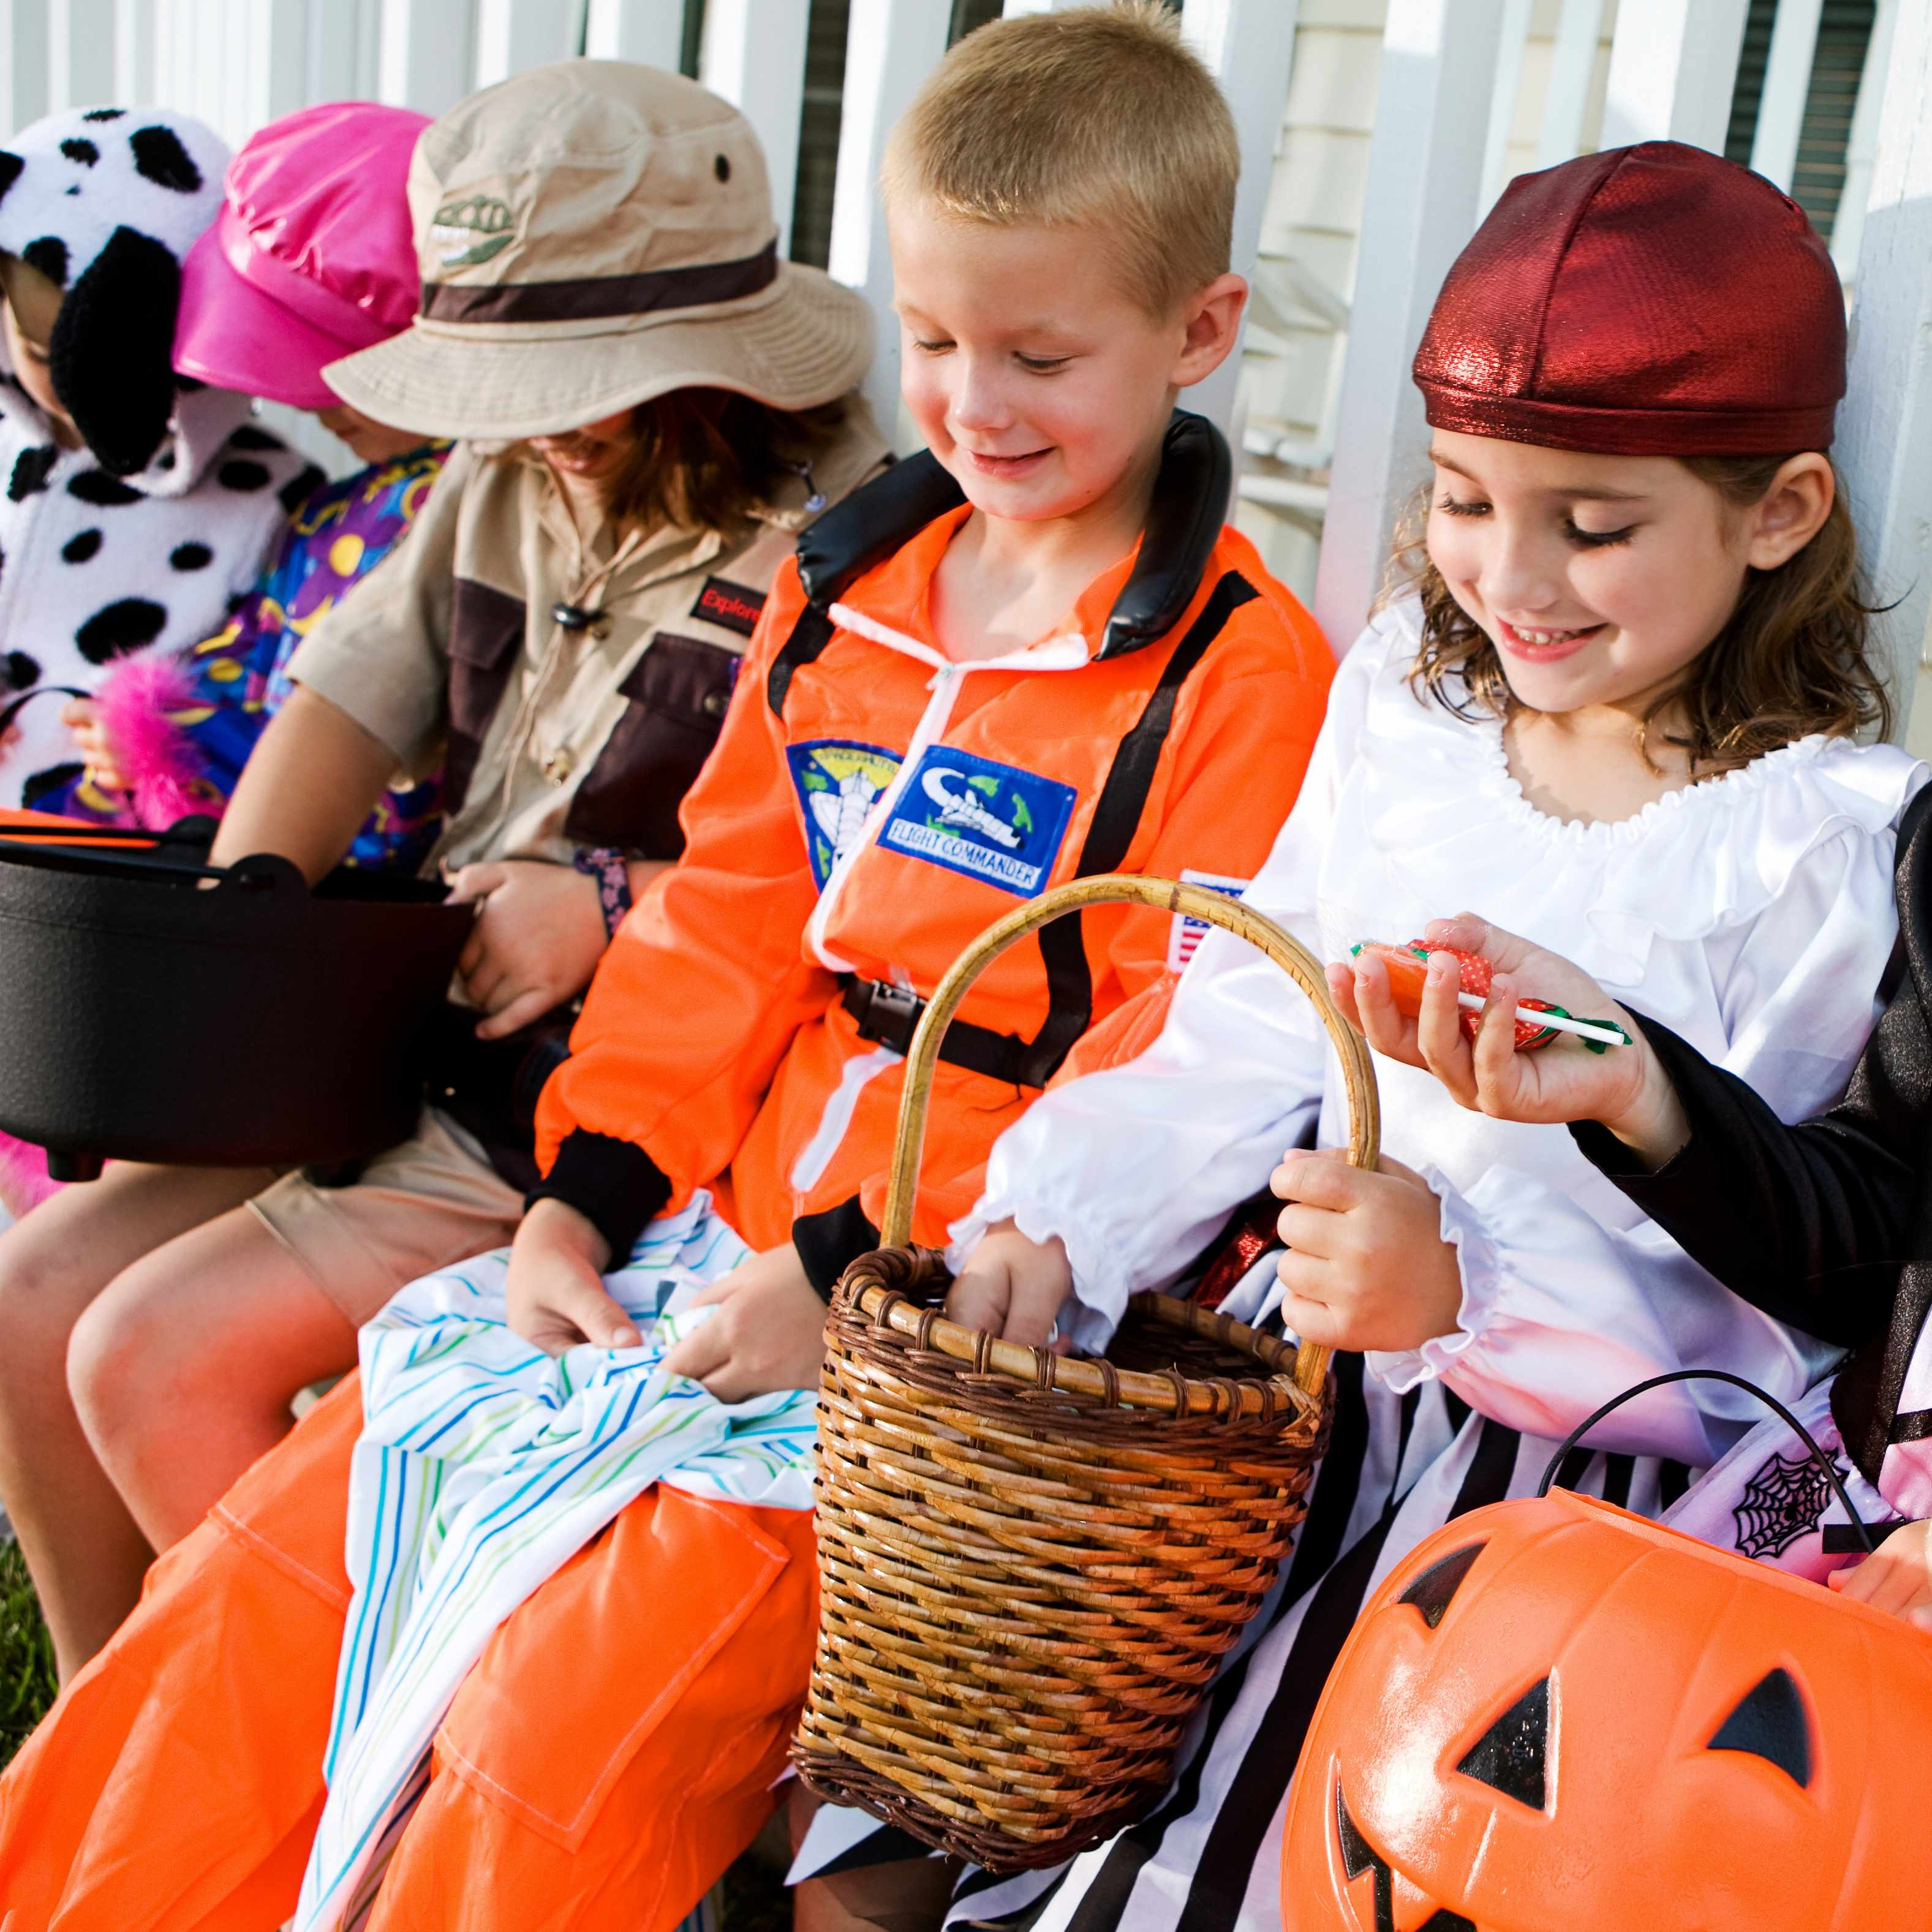 a group of children in Halloween costumes sitting on a bench looking at their candy and treats